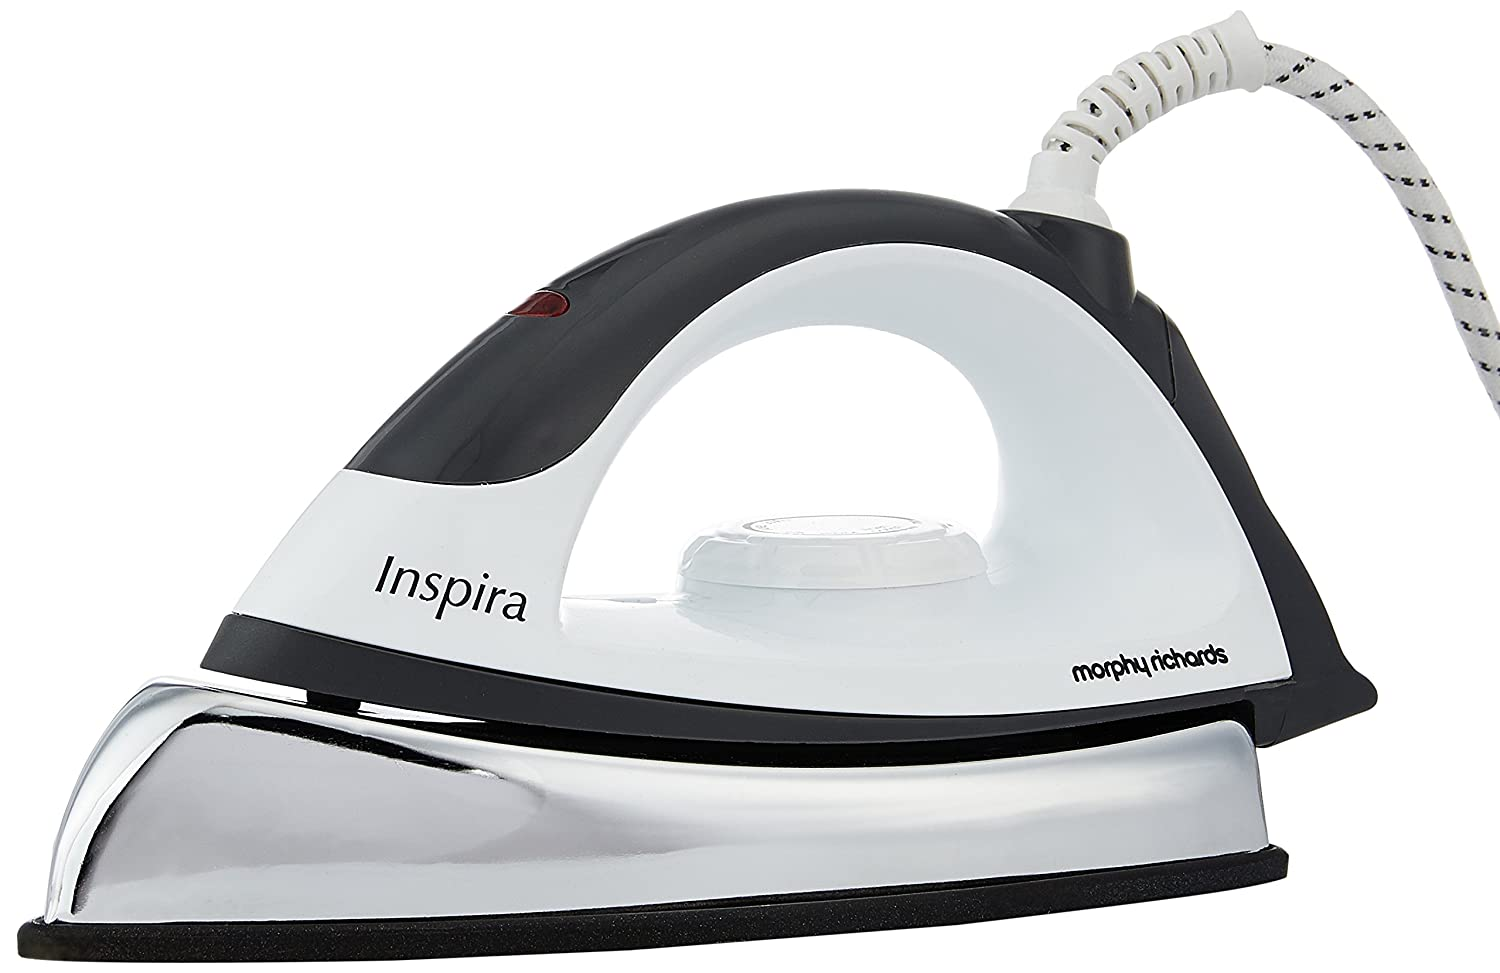 Best Iron under 1000 Rs